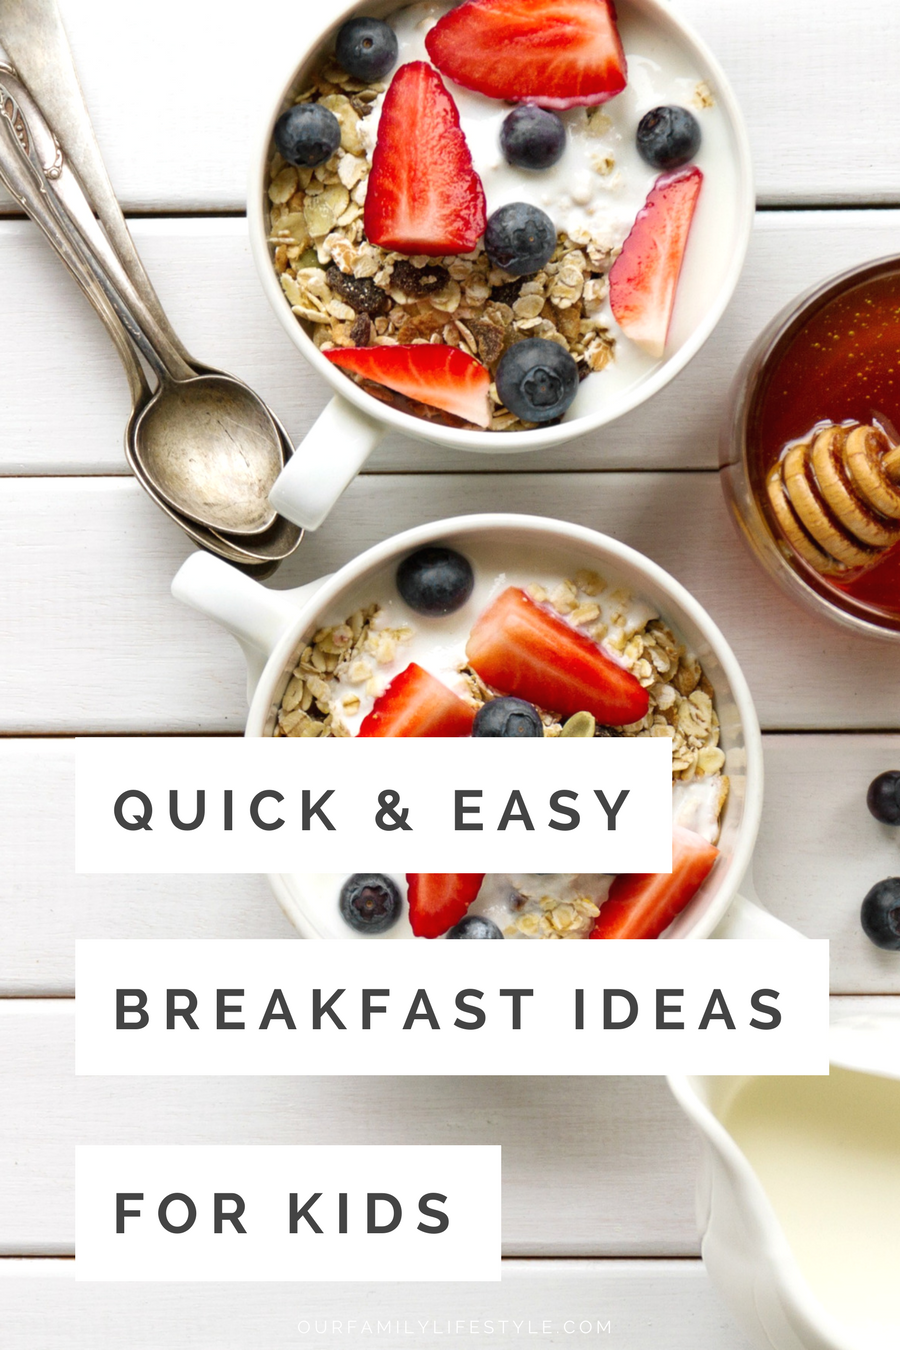 Quick and Easy Breakfast Ideas for Kids